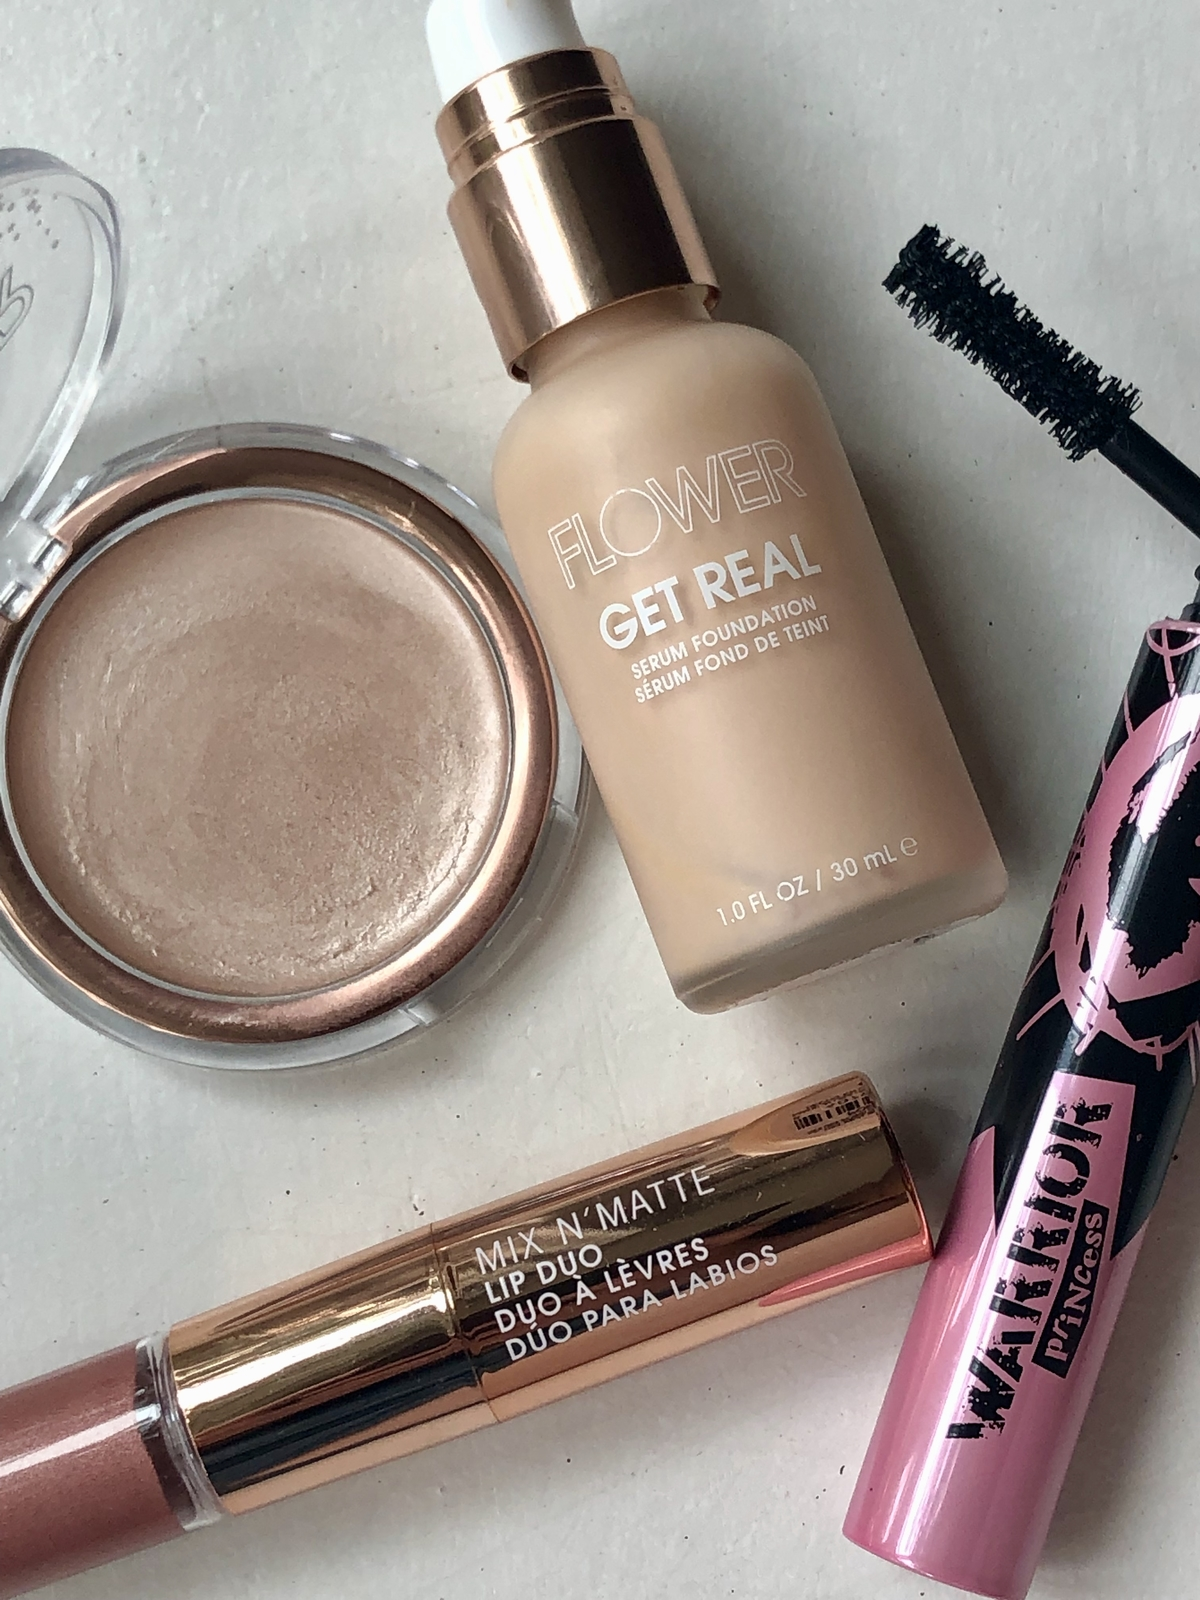 Some of my favorites from an affordable drugstore beauty brand!